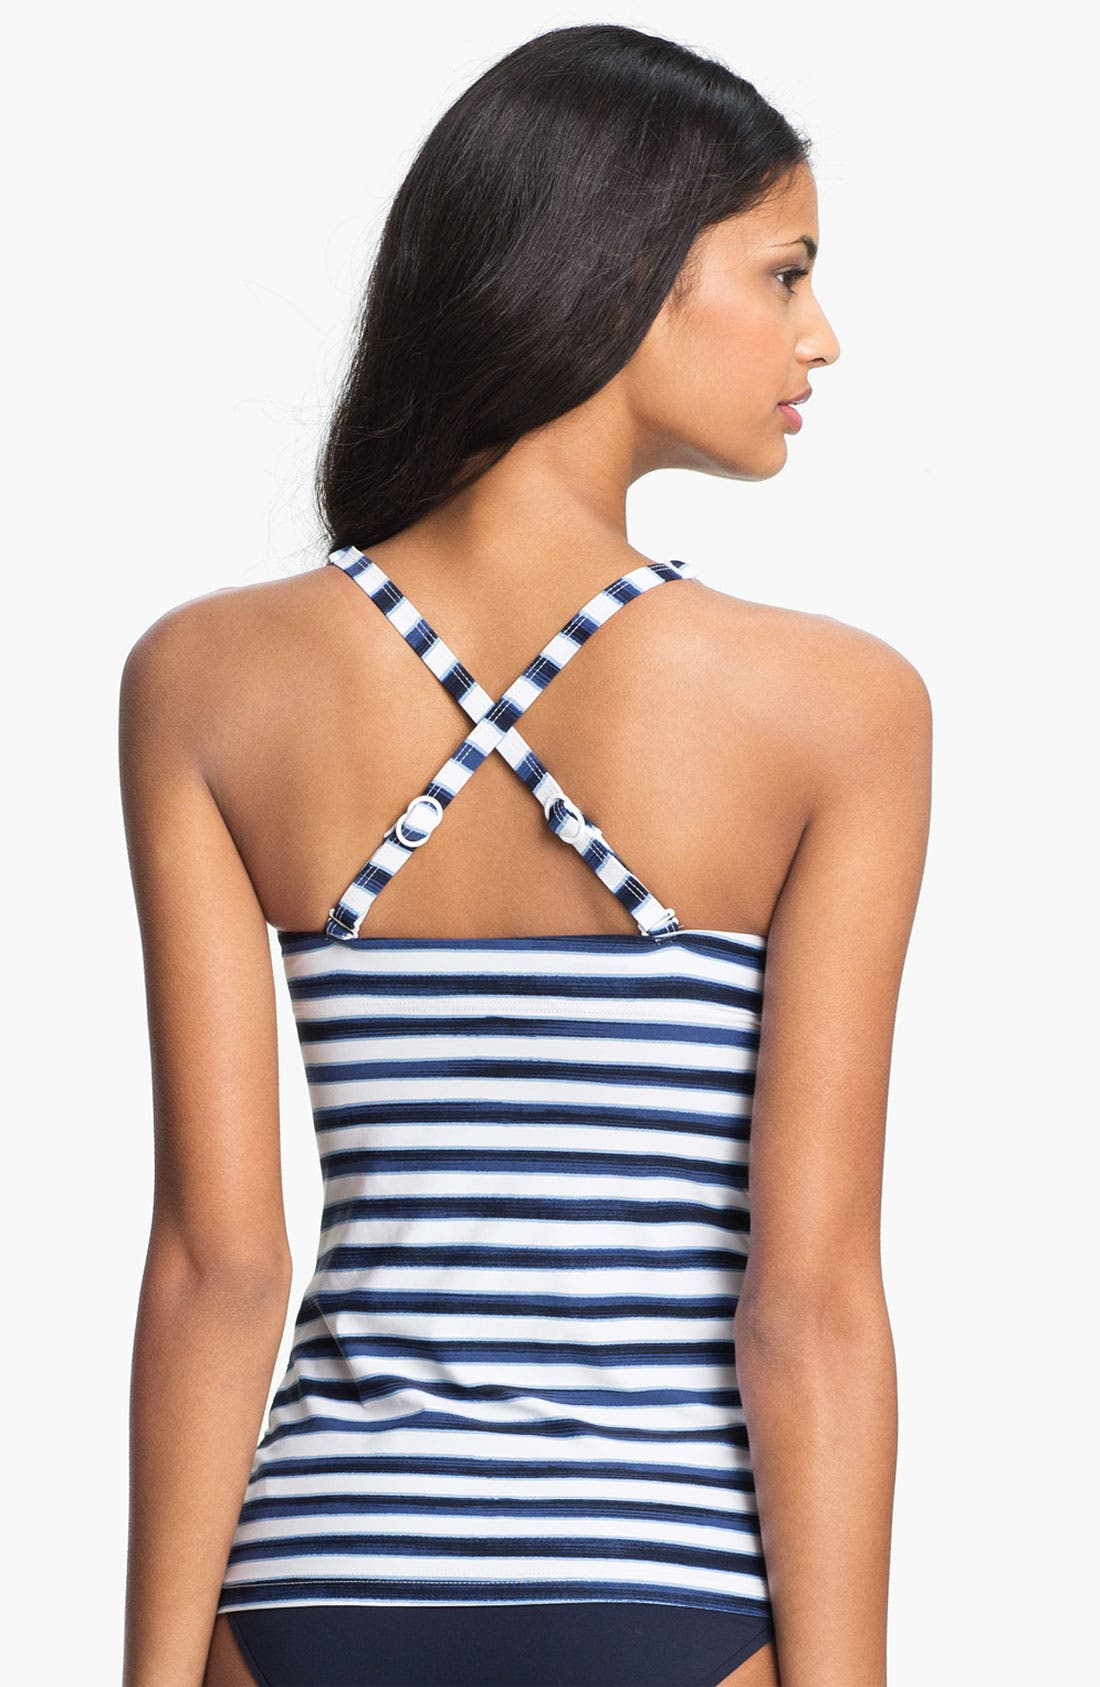 Alternate Image 2  - Seafolly Ruched Tankini Top (DD Cup)